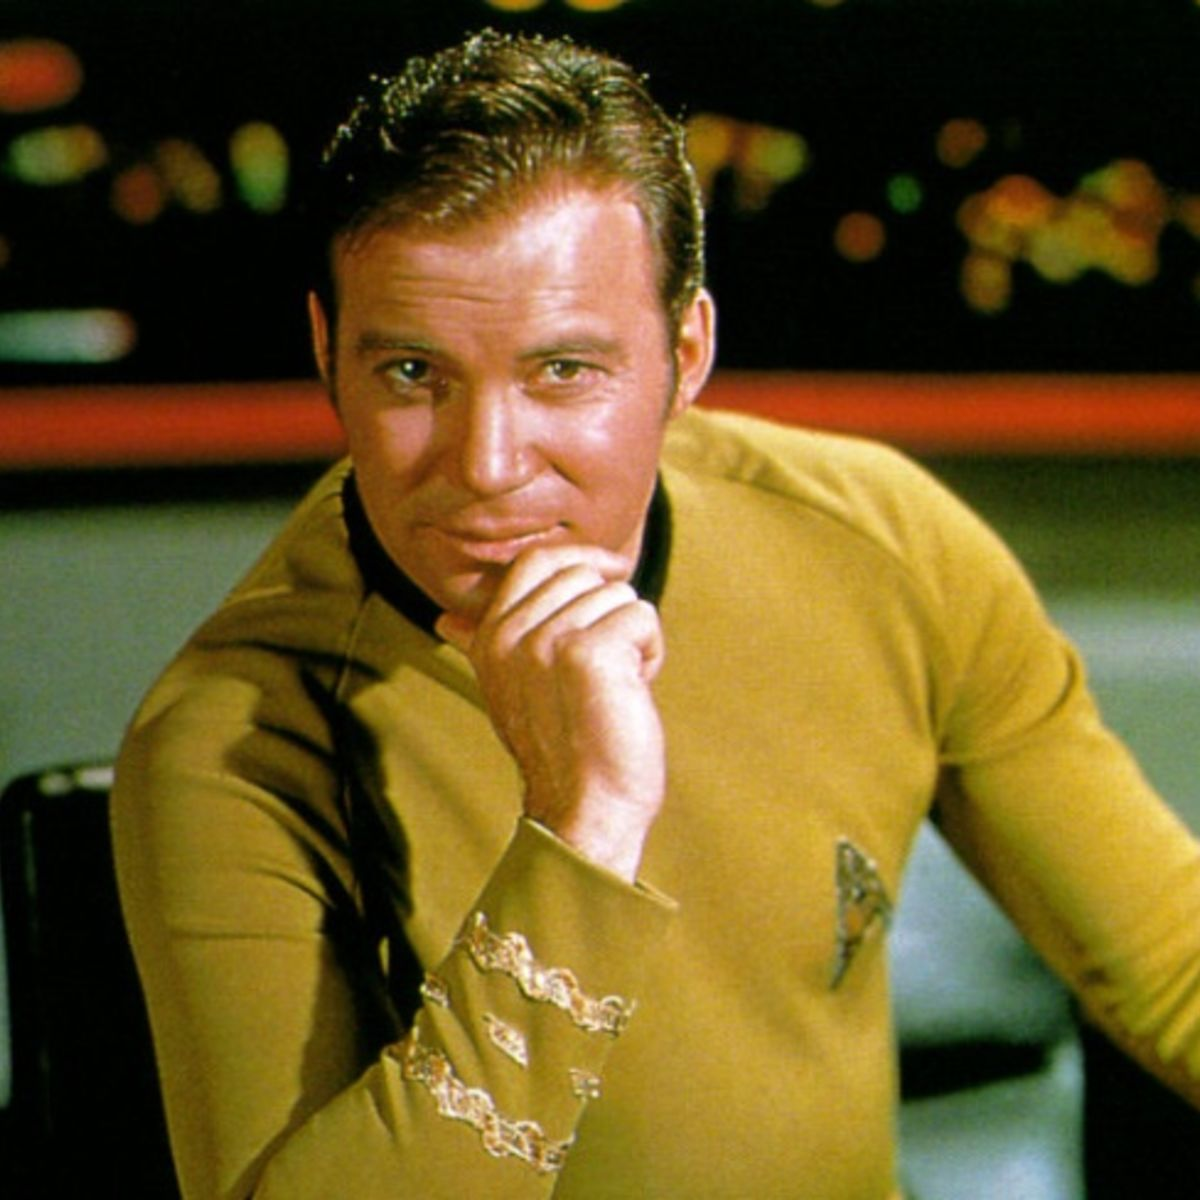 CaptainKirkWilliamShatner2.jpg